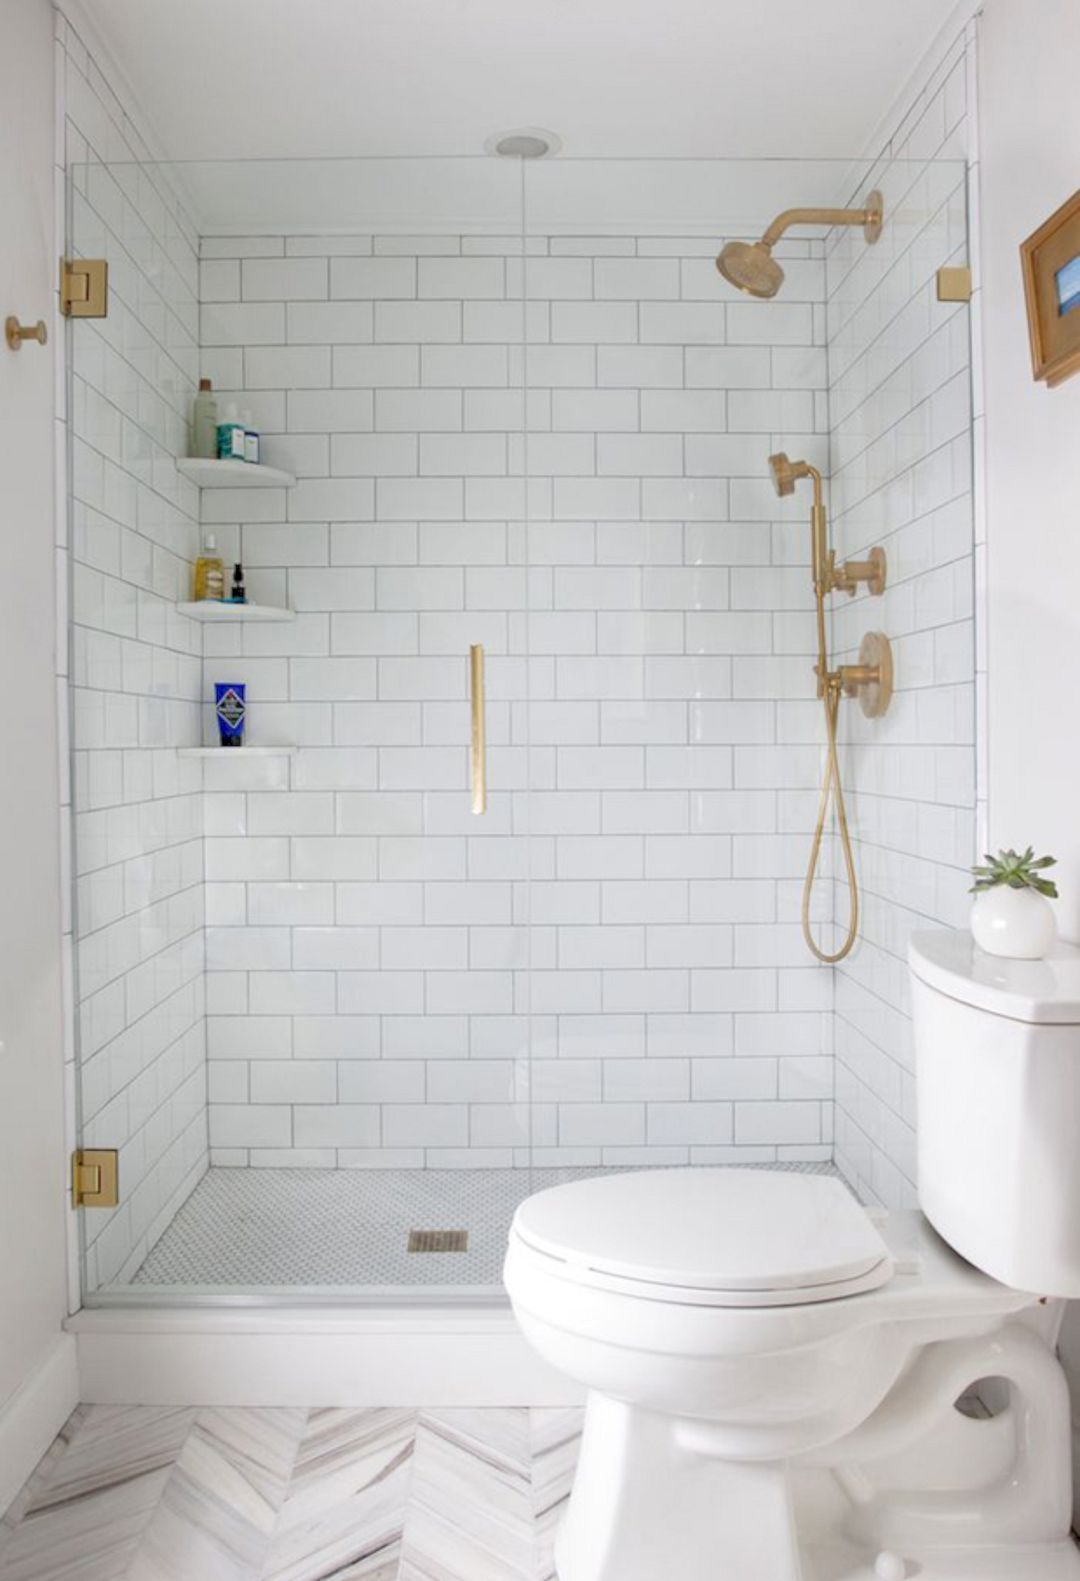 Best Small Bathroom Remodel: 111 Design Ideas | Small bathroom ...